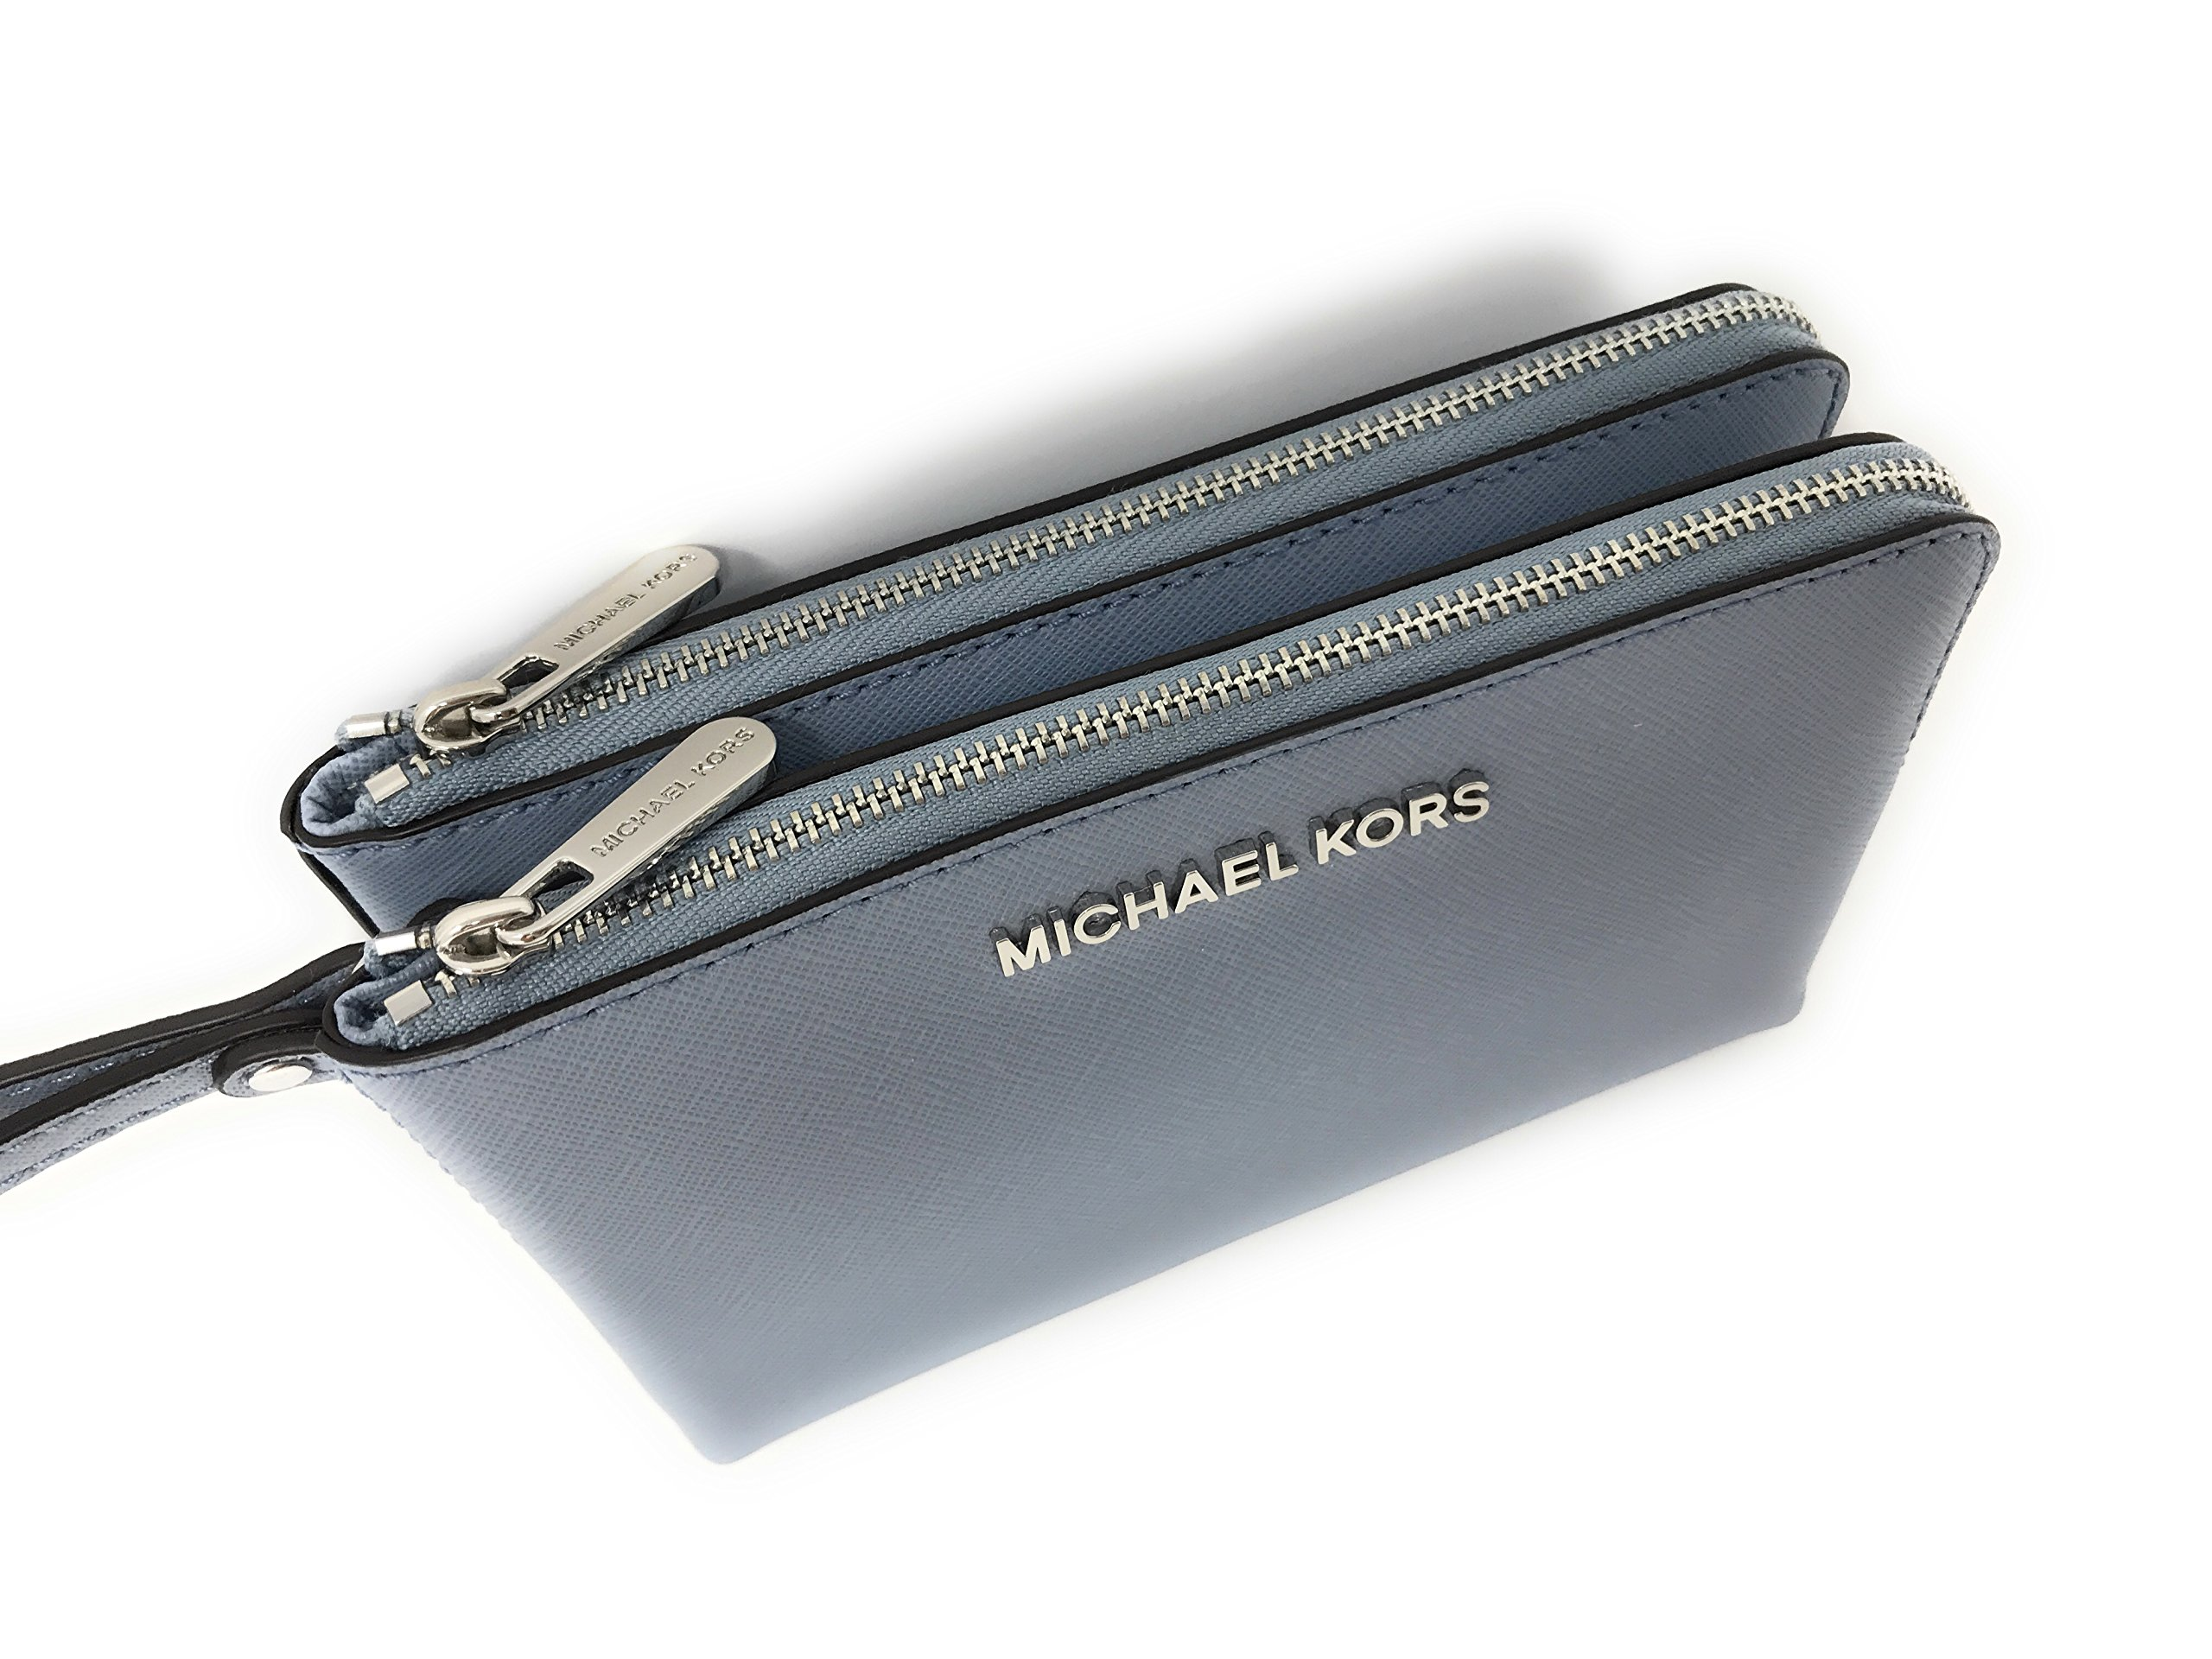 Michael Kors Jet Set Travel Large Double Gusset Wristlet Bag Purse in Pale Blue by Michael Kors (Image #1)